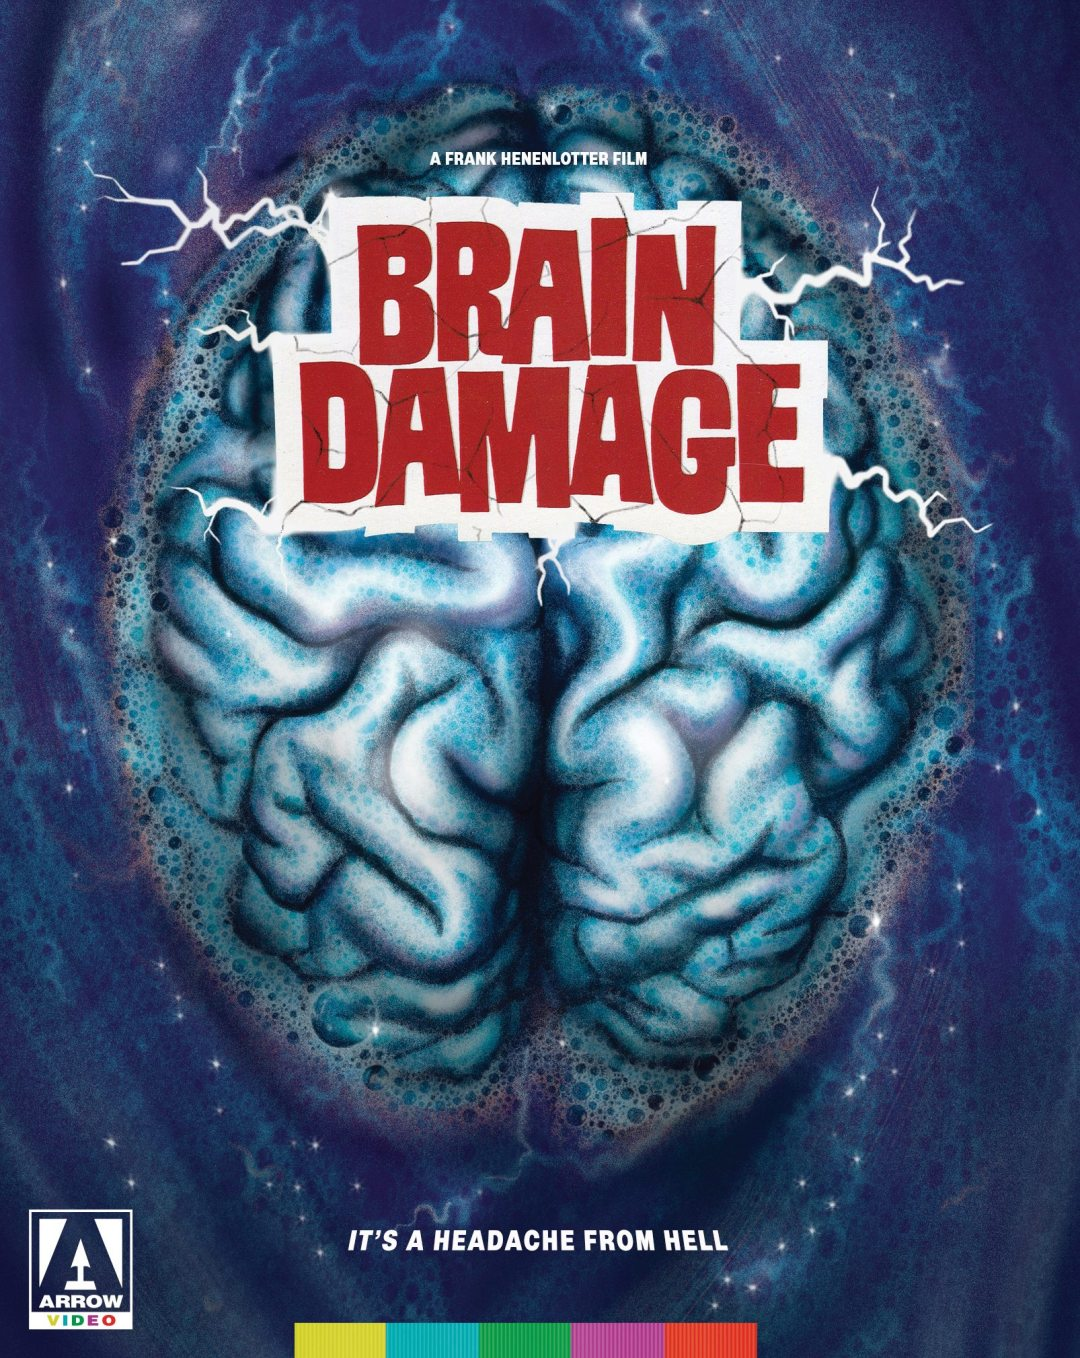 Brain Damage – Blu-ray/DVD Release on May 9th, 2017